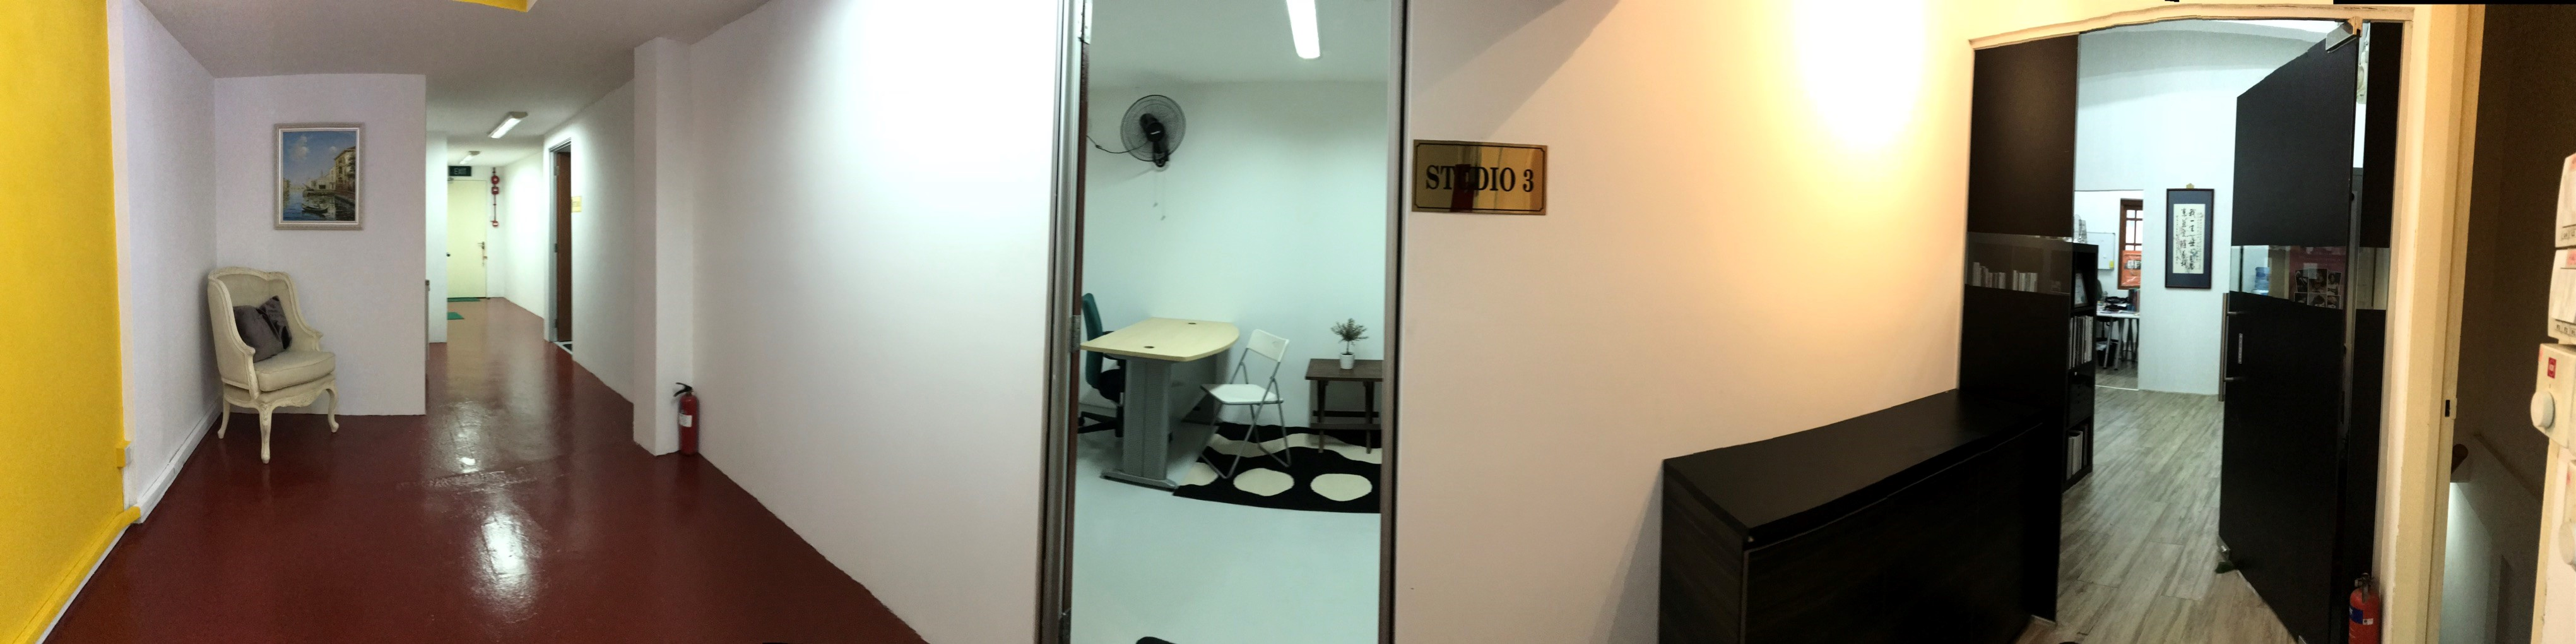 Urgent - Newly Renovated Retail Shop/Office for Rent Geylang Main Rd Conserved Shophouse 2nd floor w/lift